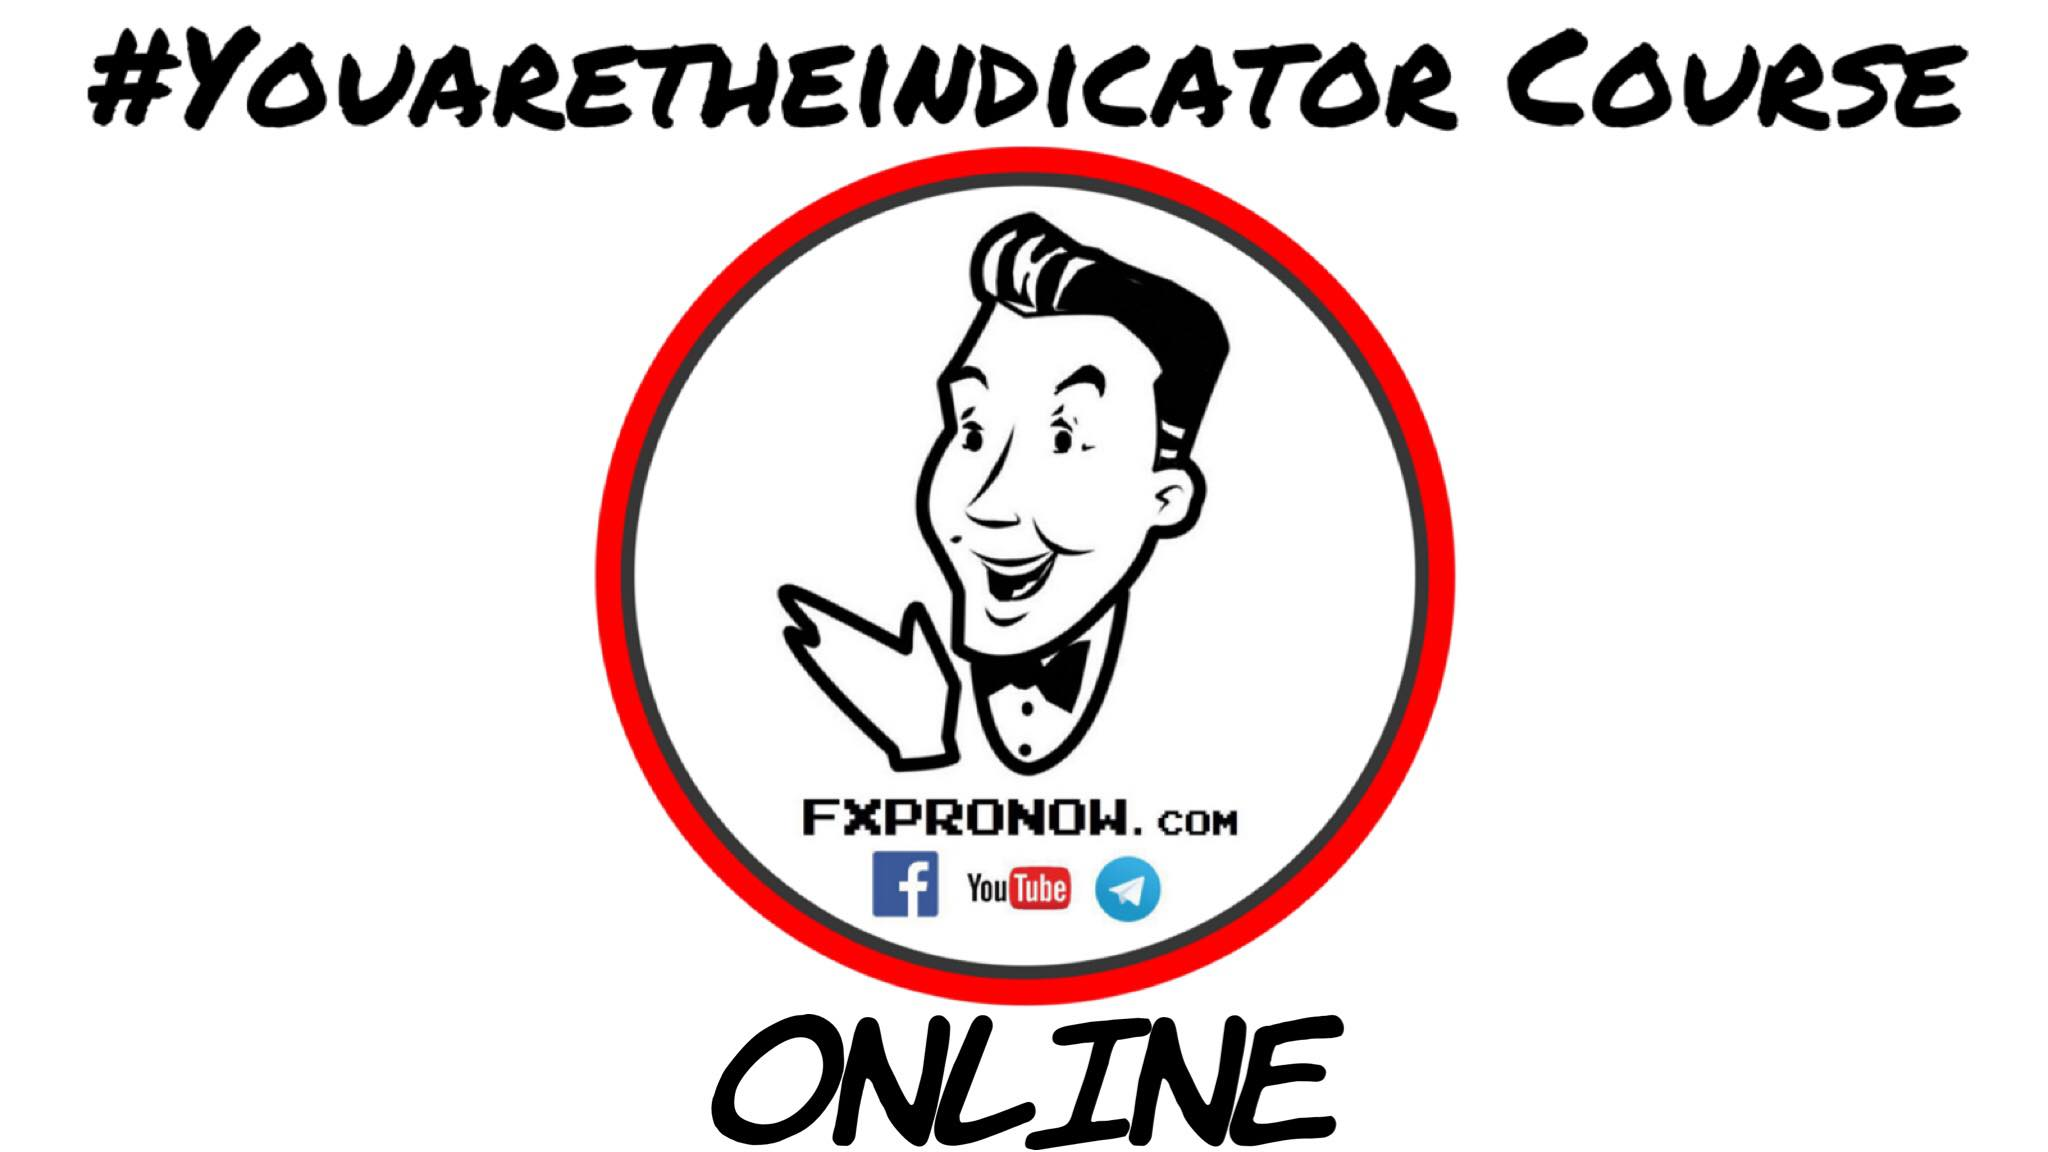 $497 - At Your Leisure Online Forex Course7 FREE BONUSES INCLUDED50+ Value Packed Recorded Video TutorialsLifetime MentorshipPrivate Support GroupPrivate Weekly Peer Mentoring24 Hour Access To Online TrainingInvitation to our yearly #FxOnTheBeach Celebration.By enrolling today you have helped a child get a course, FREE.